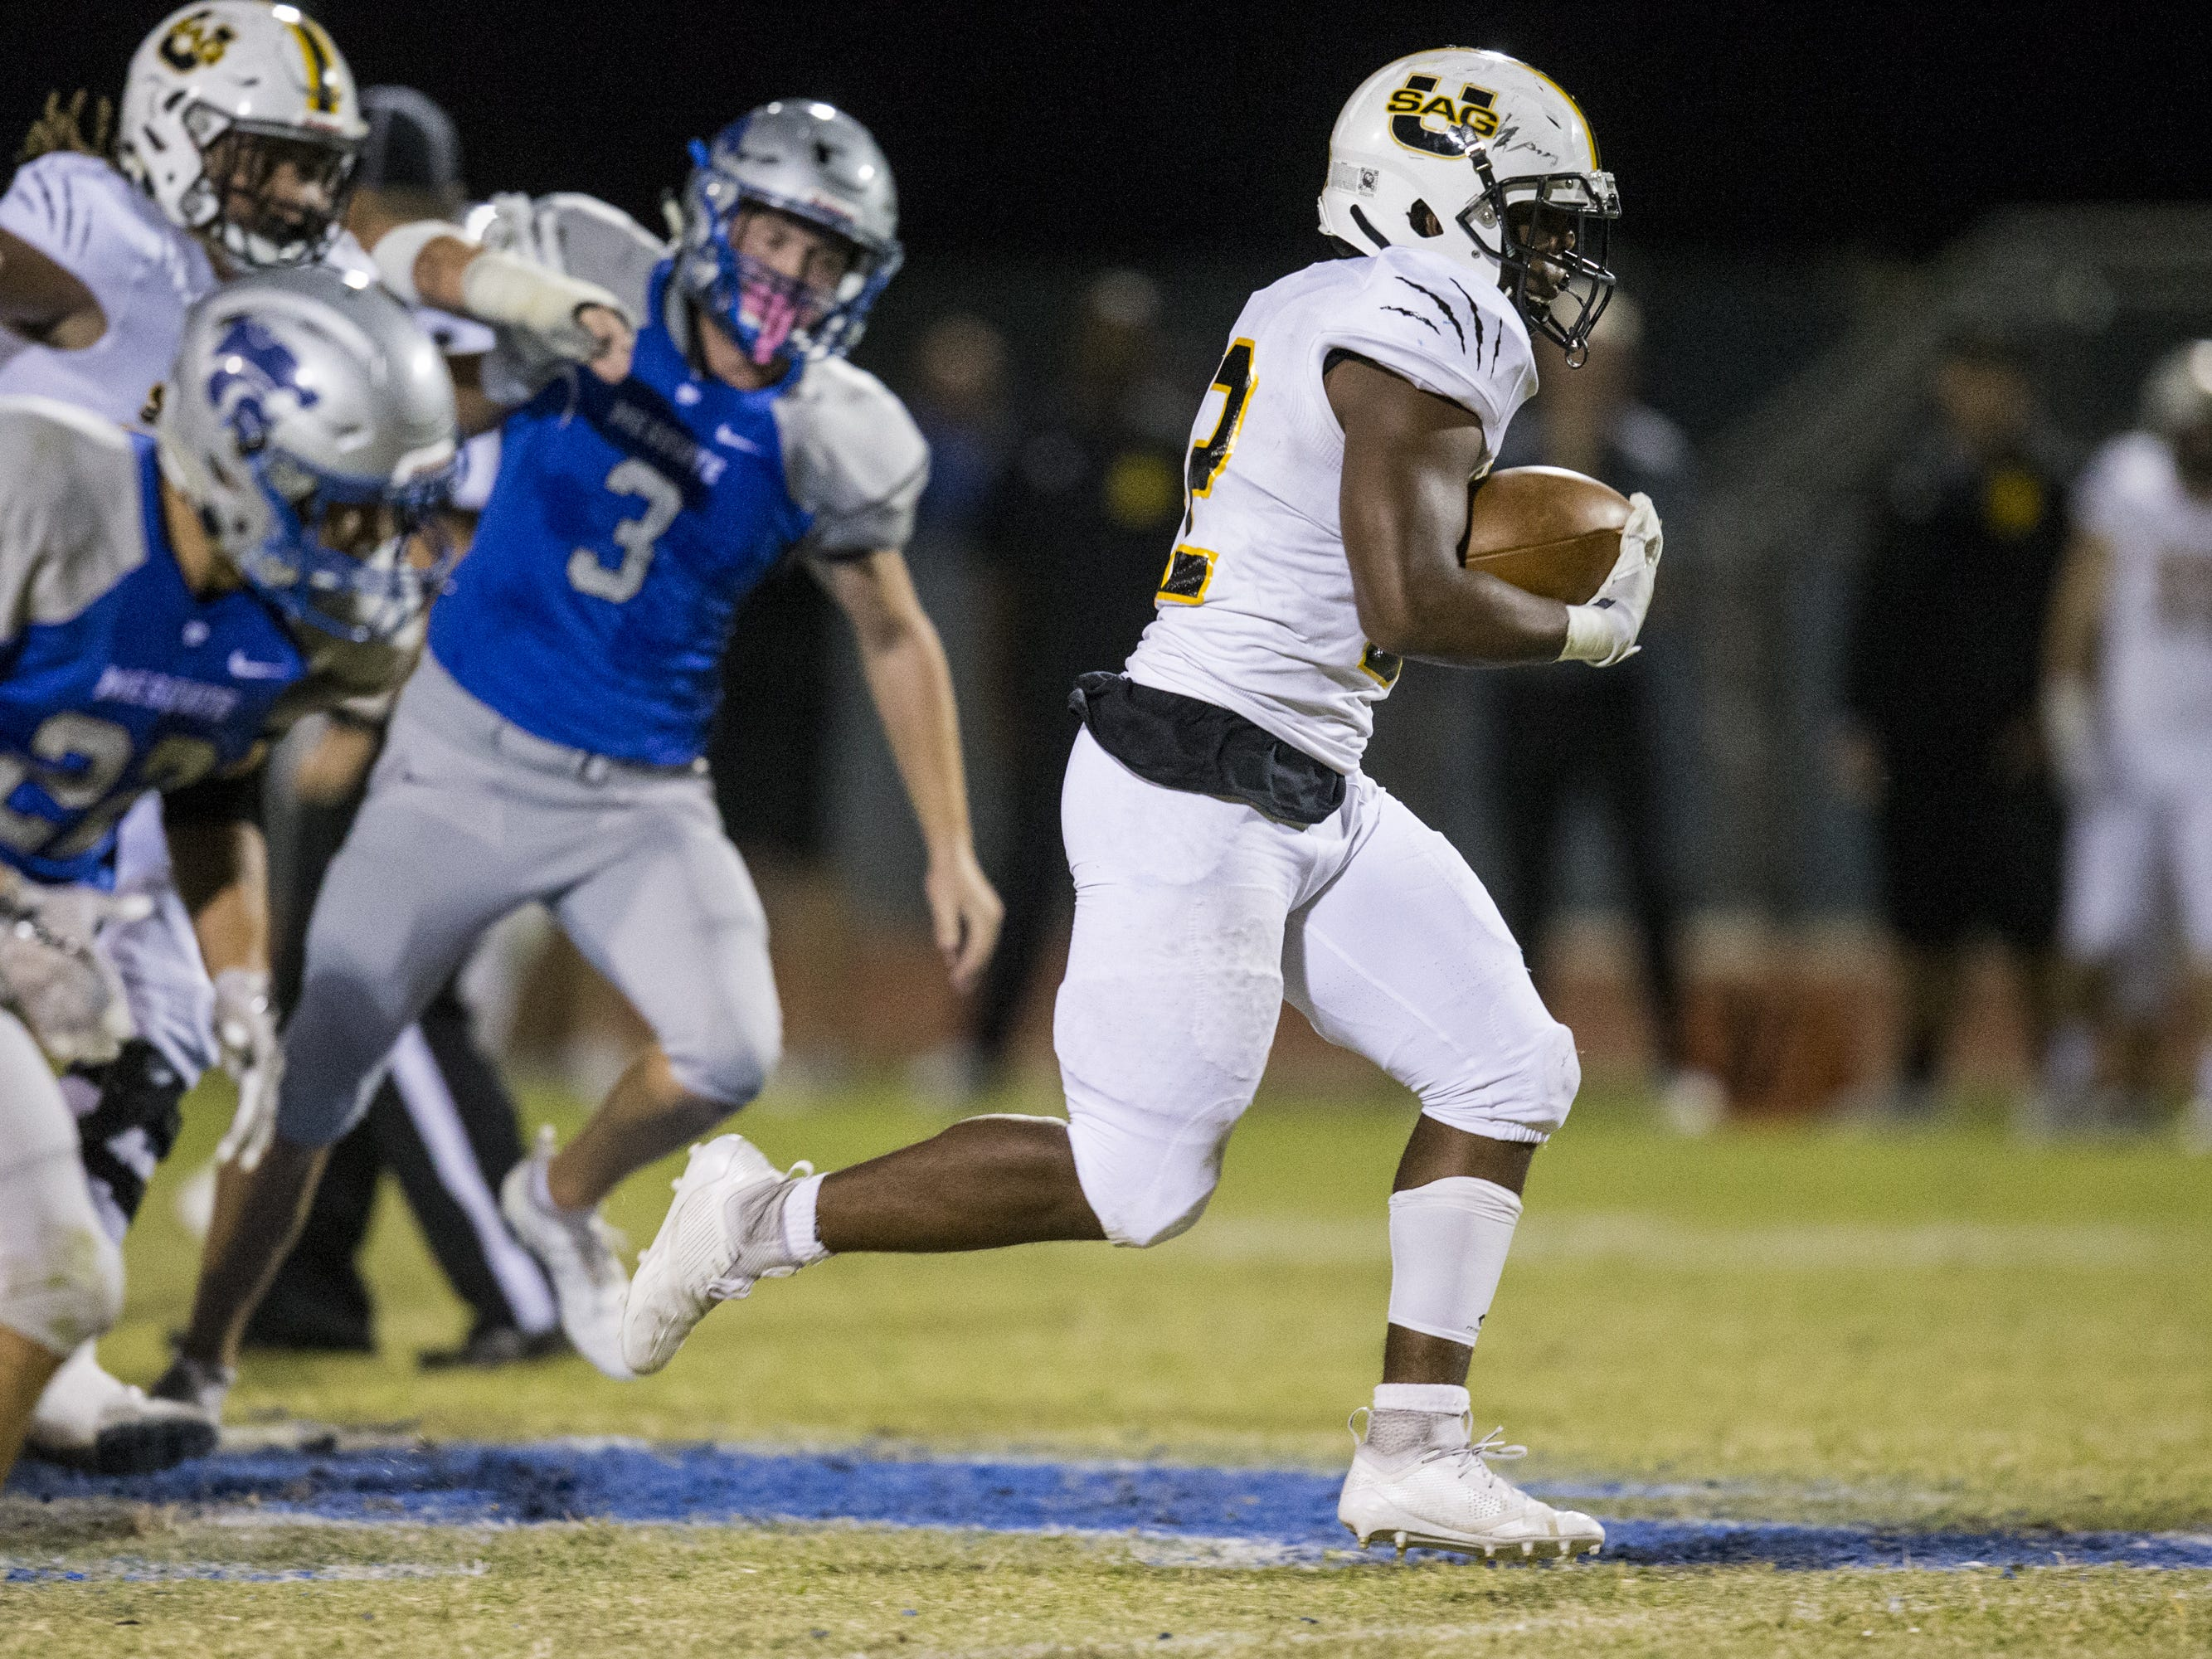 Saguaro's Israel Benjamin rushes for a touchdown against Mesquite in the first half on Friday, Oct. 26, 2018, at Mesquite High School in Gilbert, Ariz.  #azhsb